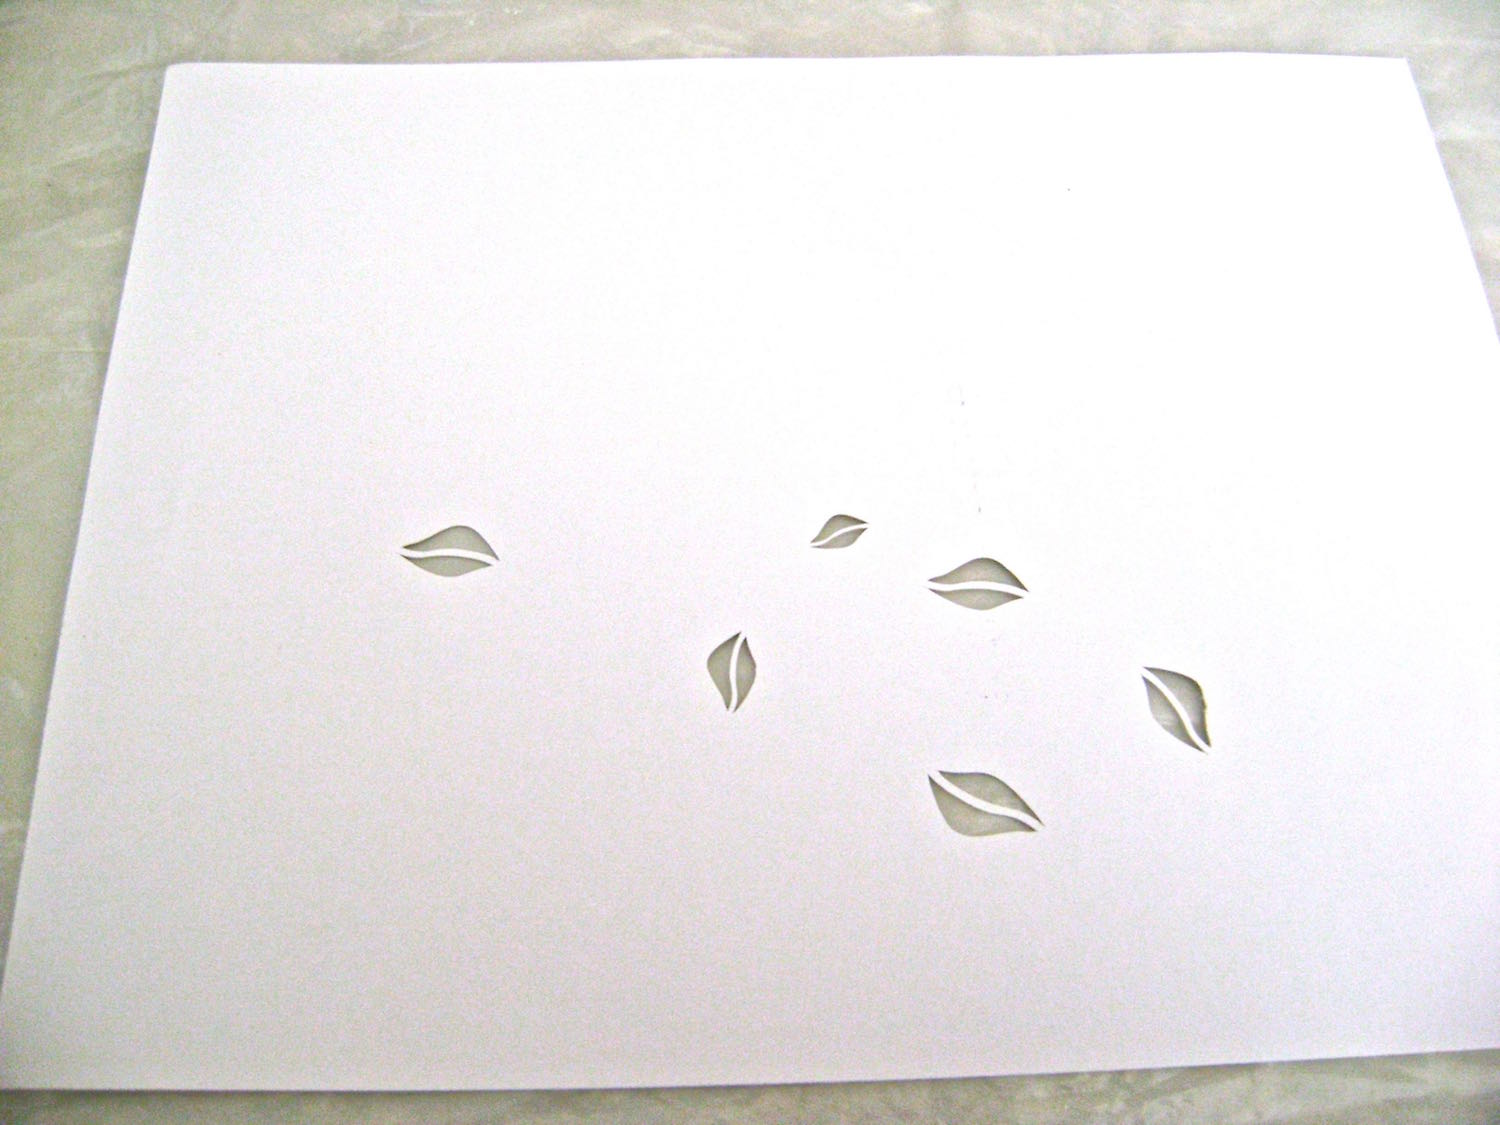 step 2 - Download and print out the leaf stencil on a label sheet. Cut out the stencil.